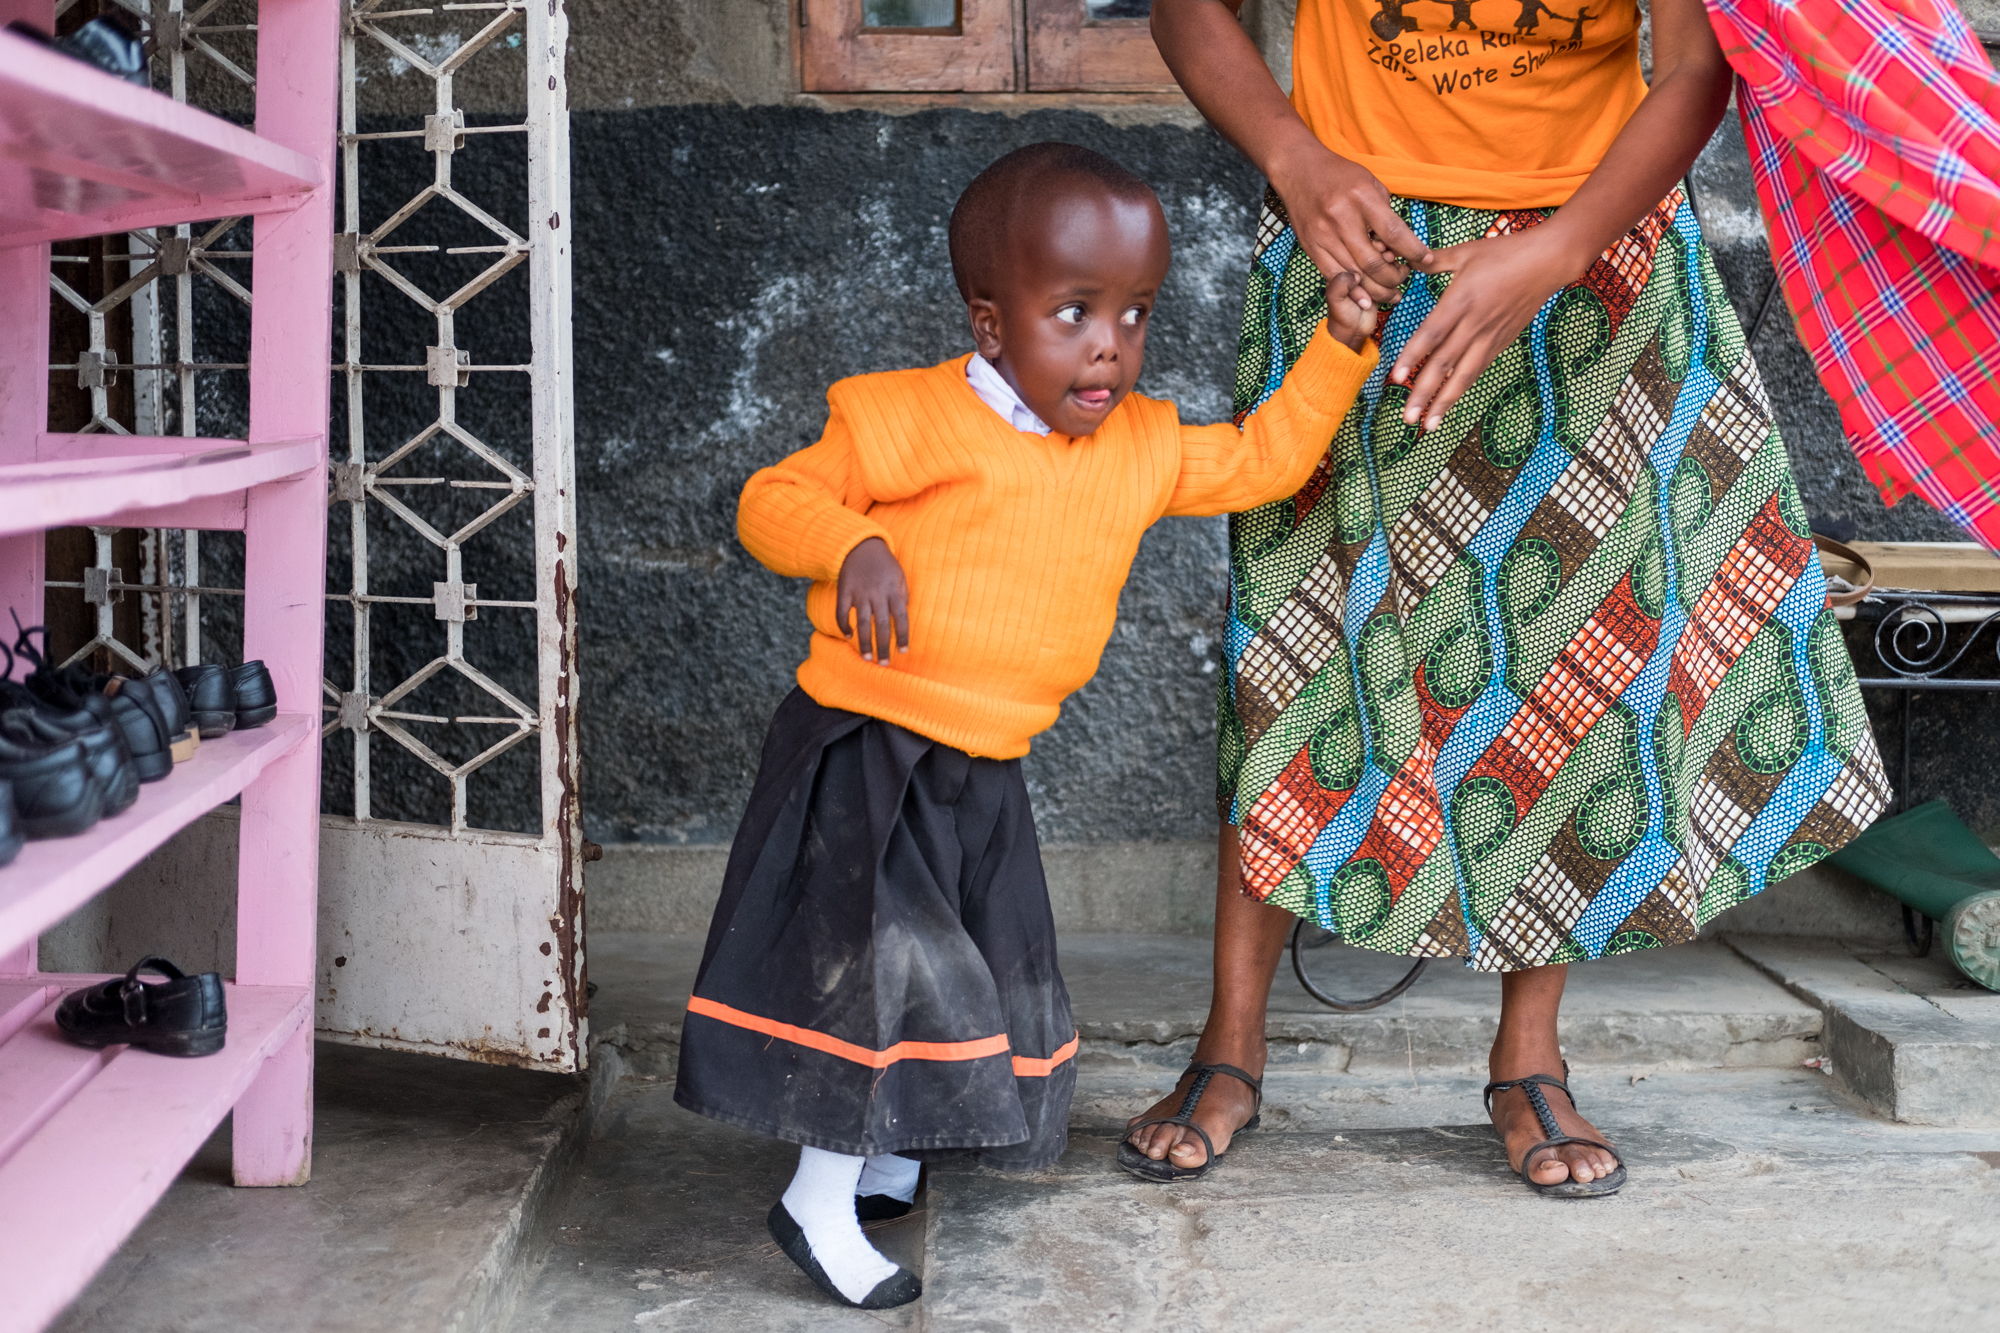 A teacher helps a student (Felistar Sabbi Mwangolela) stand up and walk at Child Support Tanzania, a non-governmental organization located in Mbeya, Tanzania, that educates disabled children.